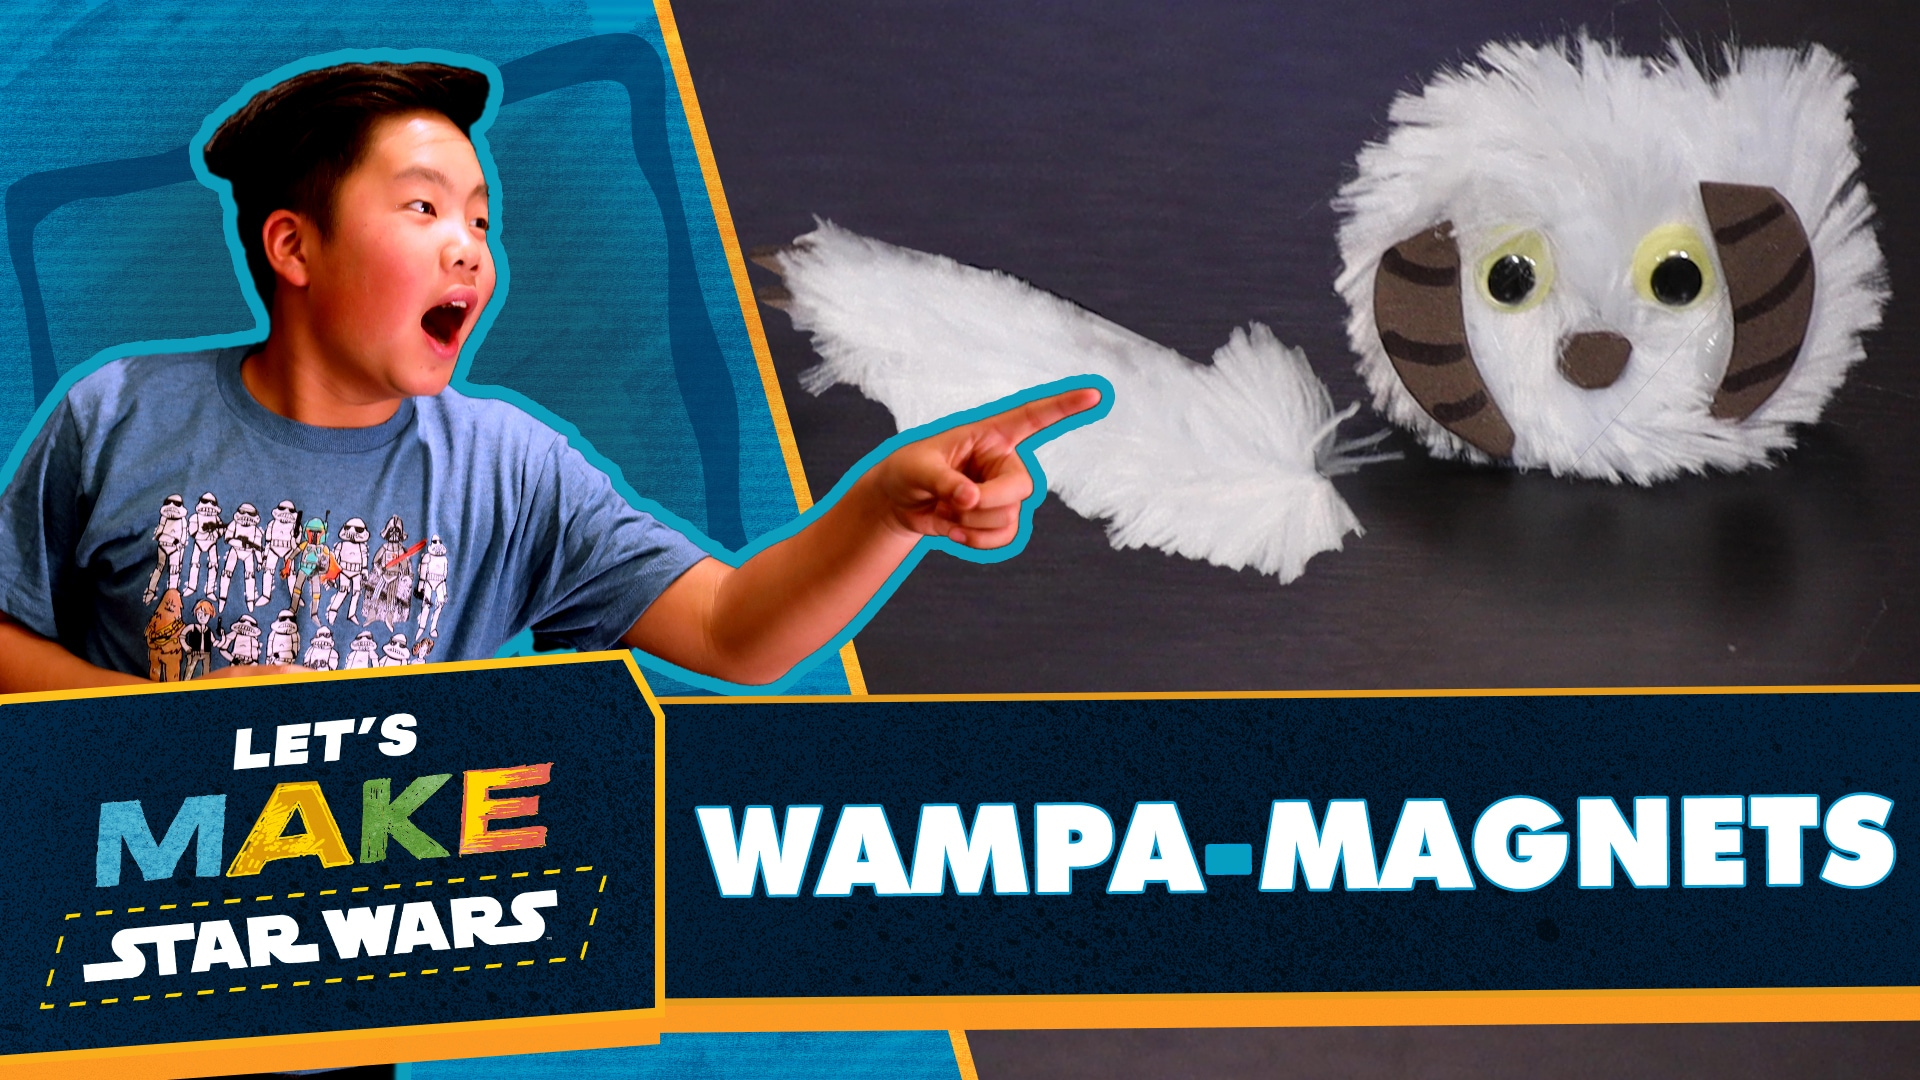 Let's Make Star Wars - How to Make Star Wars Wampa Magnets